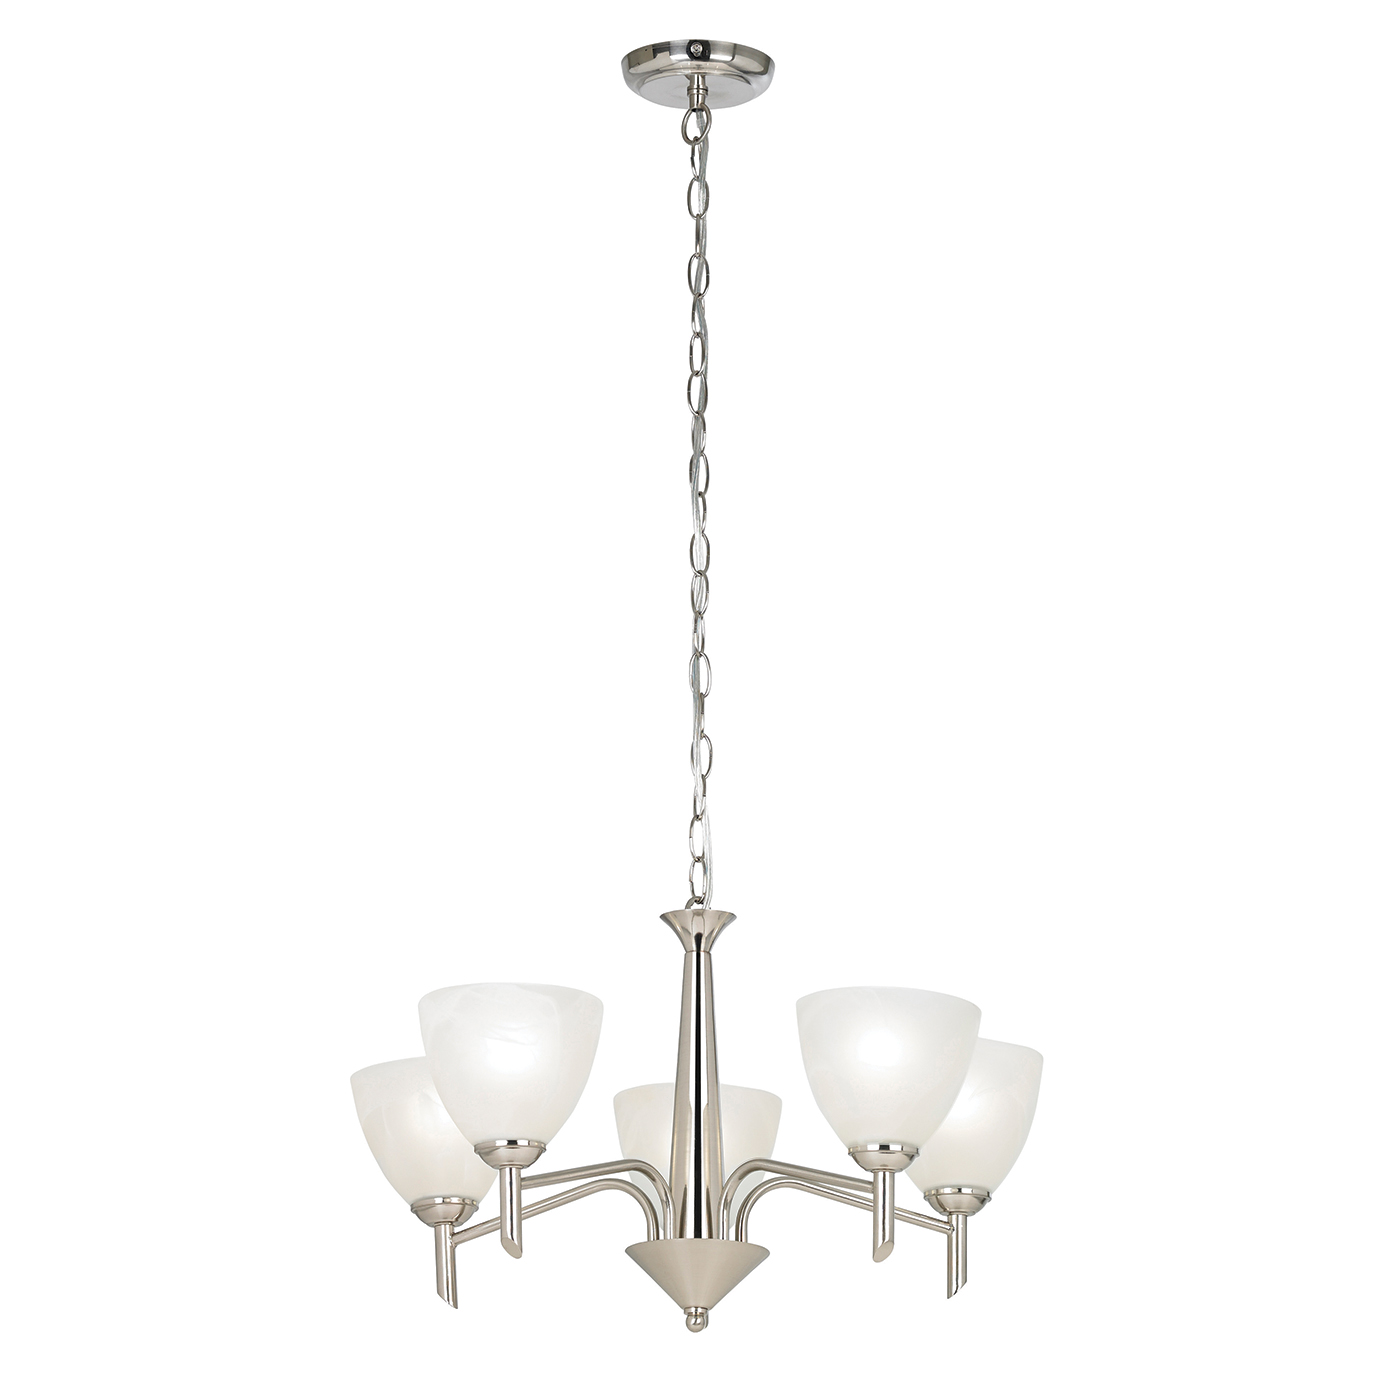 Endon Neeson pendant 5x 40W Satin nickel effect plate & alabaster glass